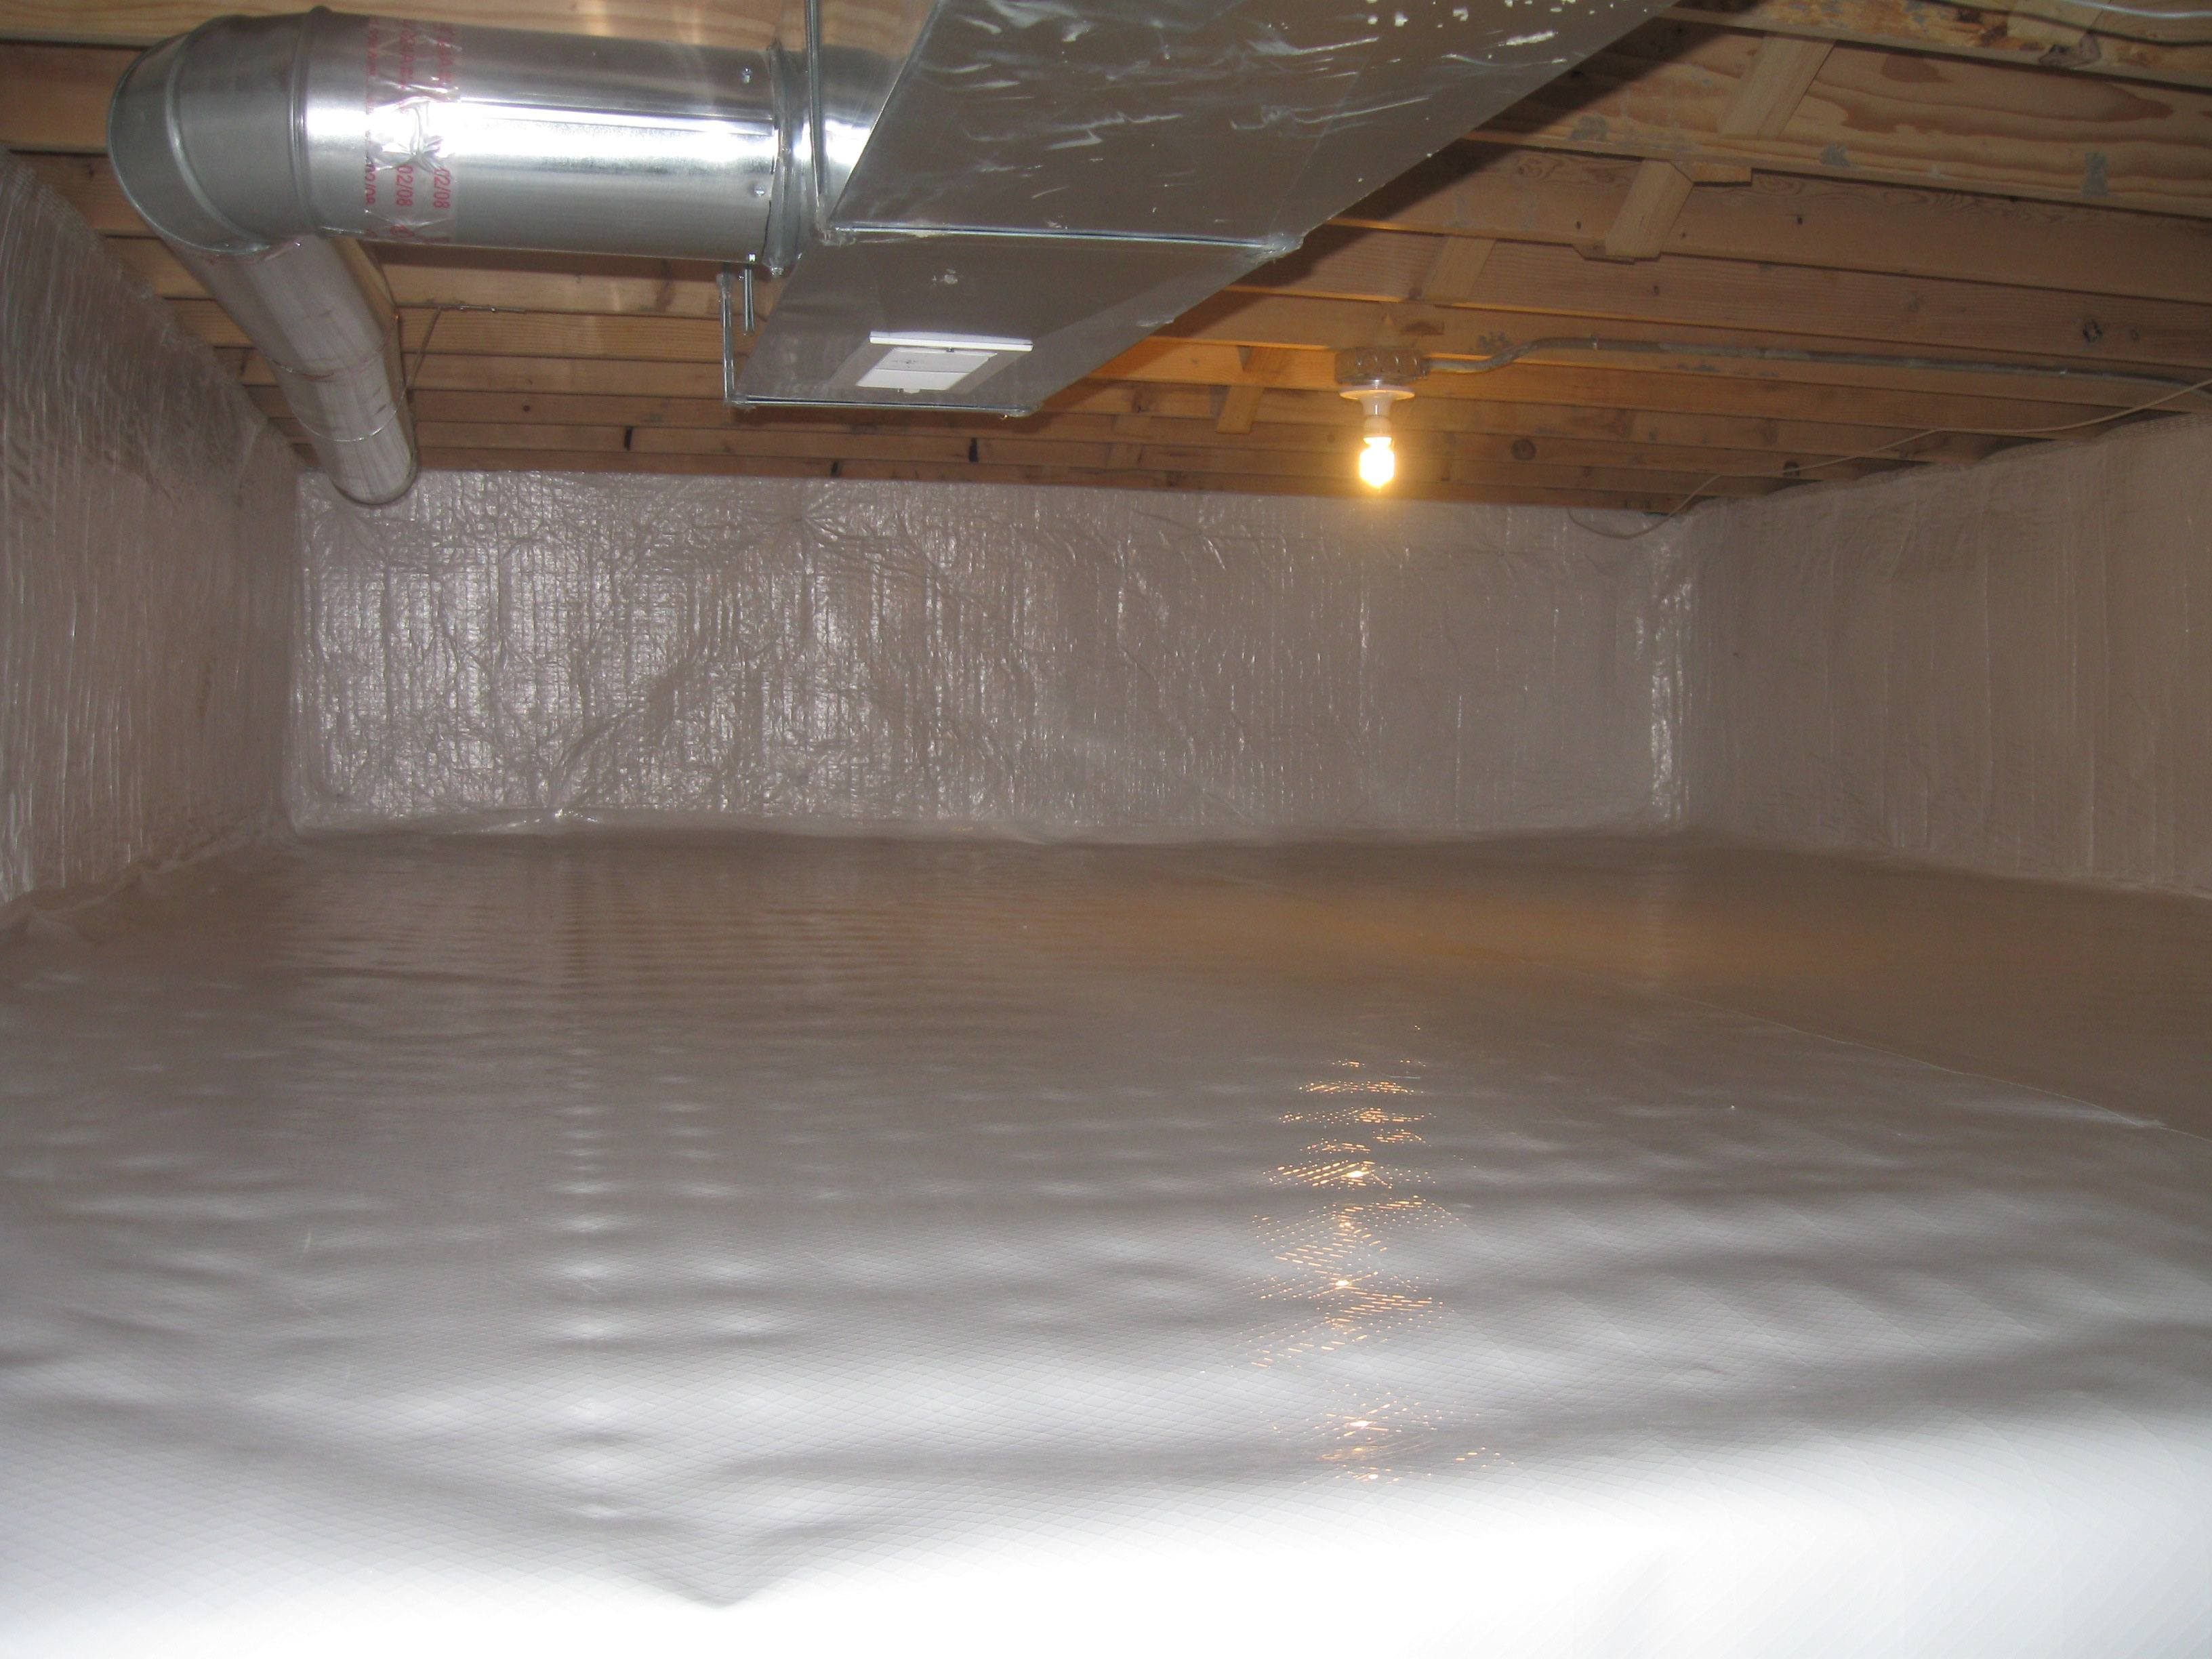 Crawl Space Encapsulation and Vapor Barriers for Damp Crawl Spaces